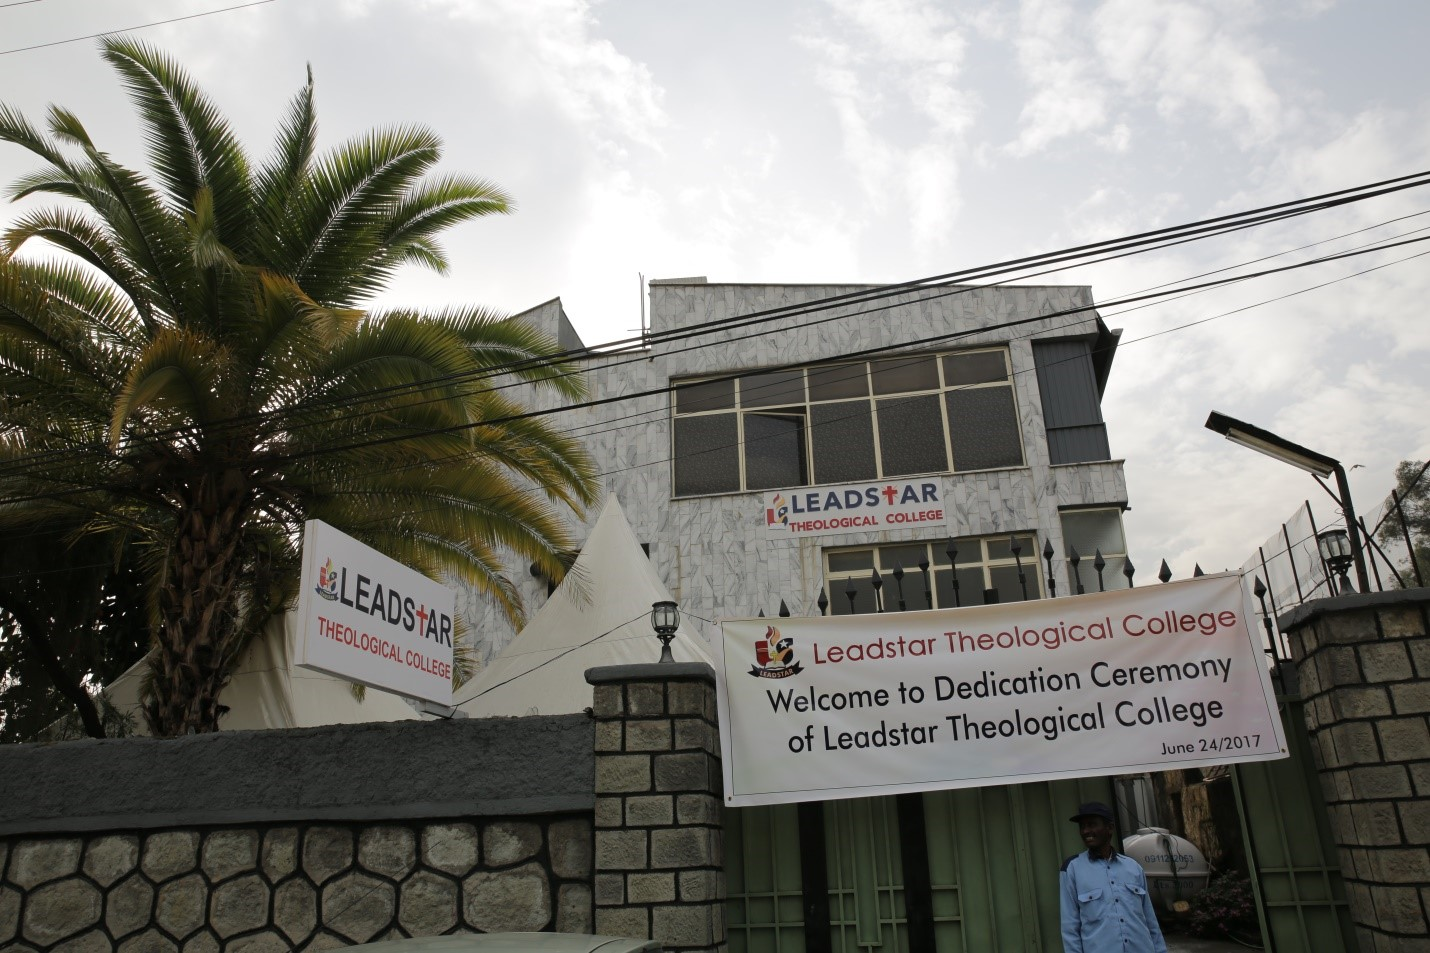 about | Leadstar Theological College